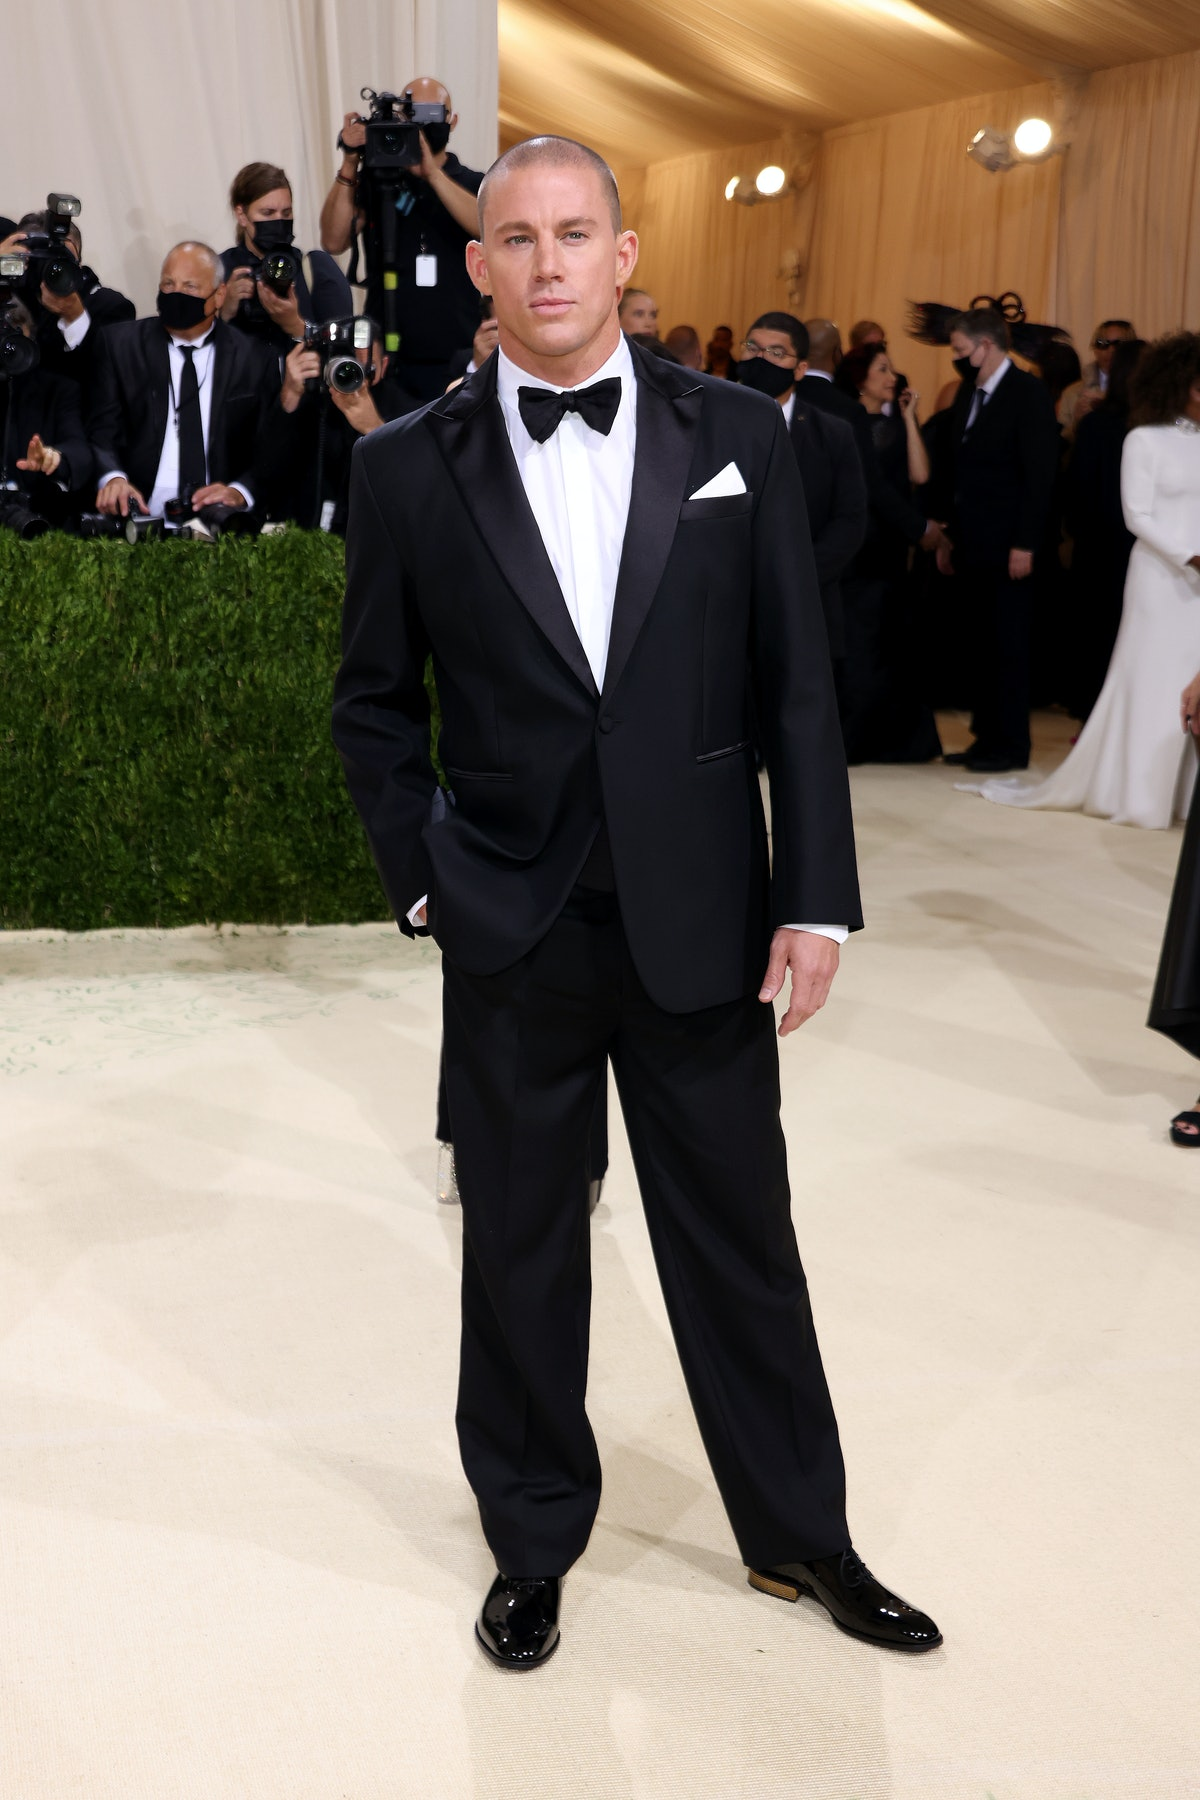 Channing Tatum attends The 2021 Met Gala Celebrating In America: A Lexicon Of Fashion at Metropolita...